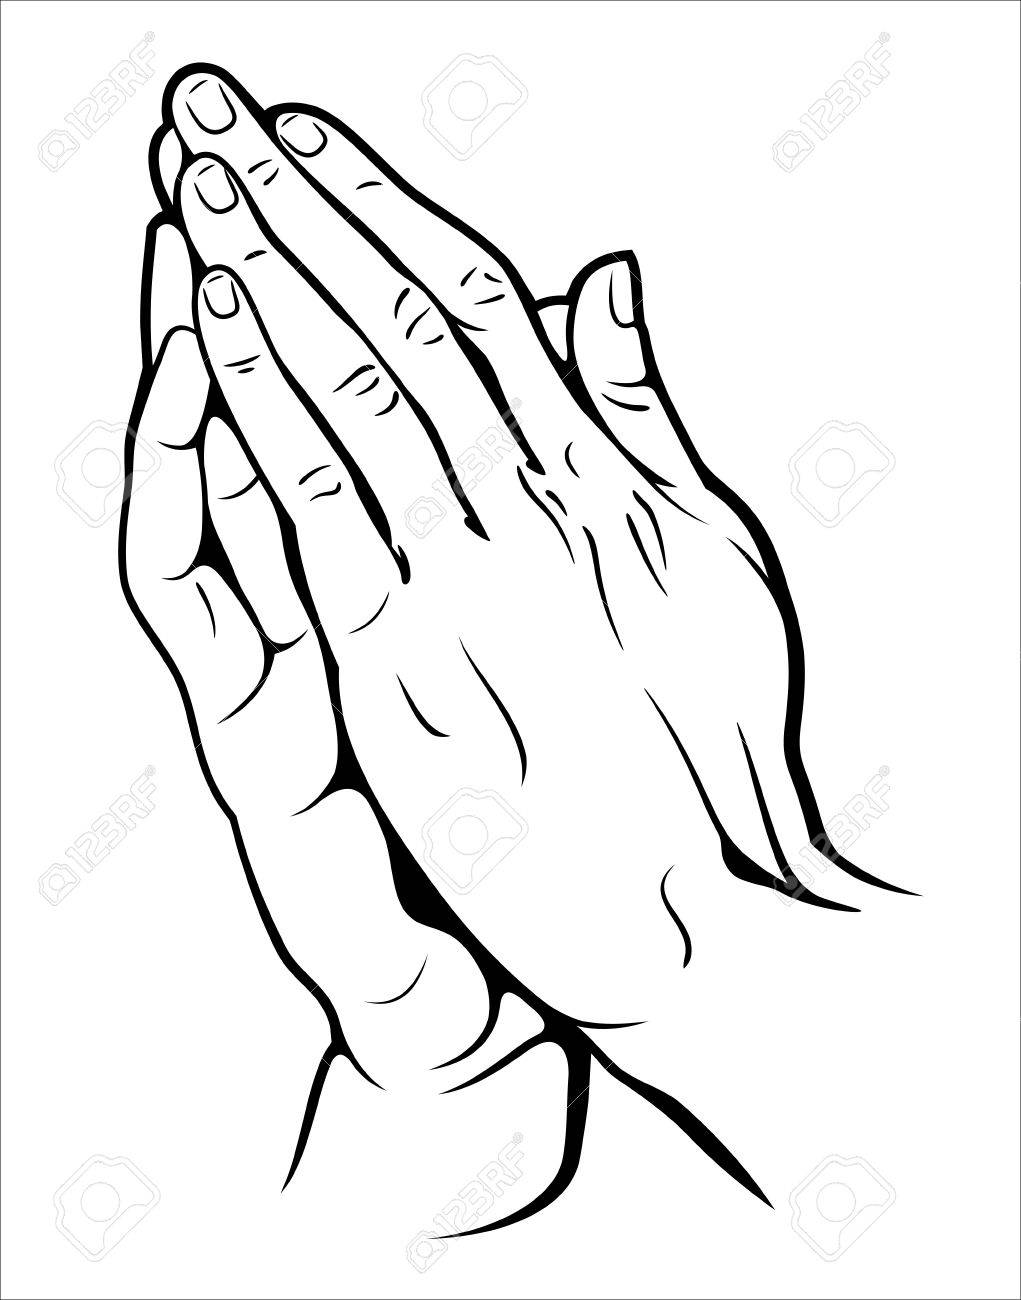 1021x1300 Human Hands Folded In Prayer Royalty Free Cliparts, Vectors,